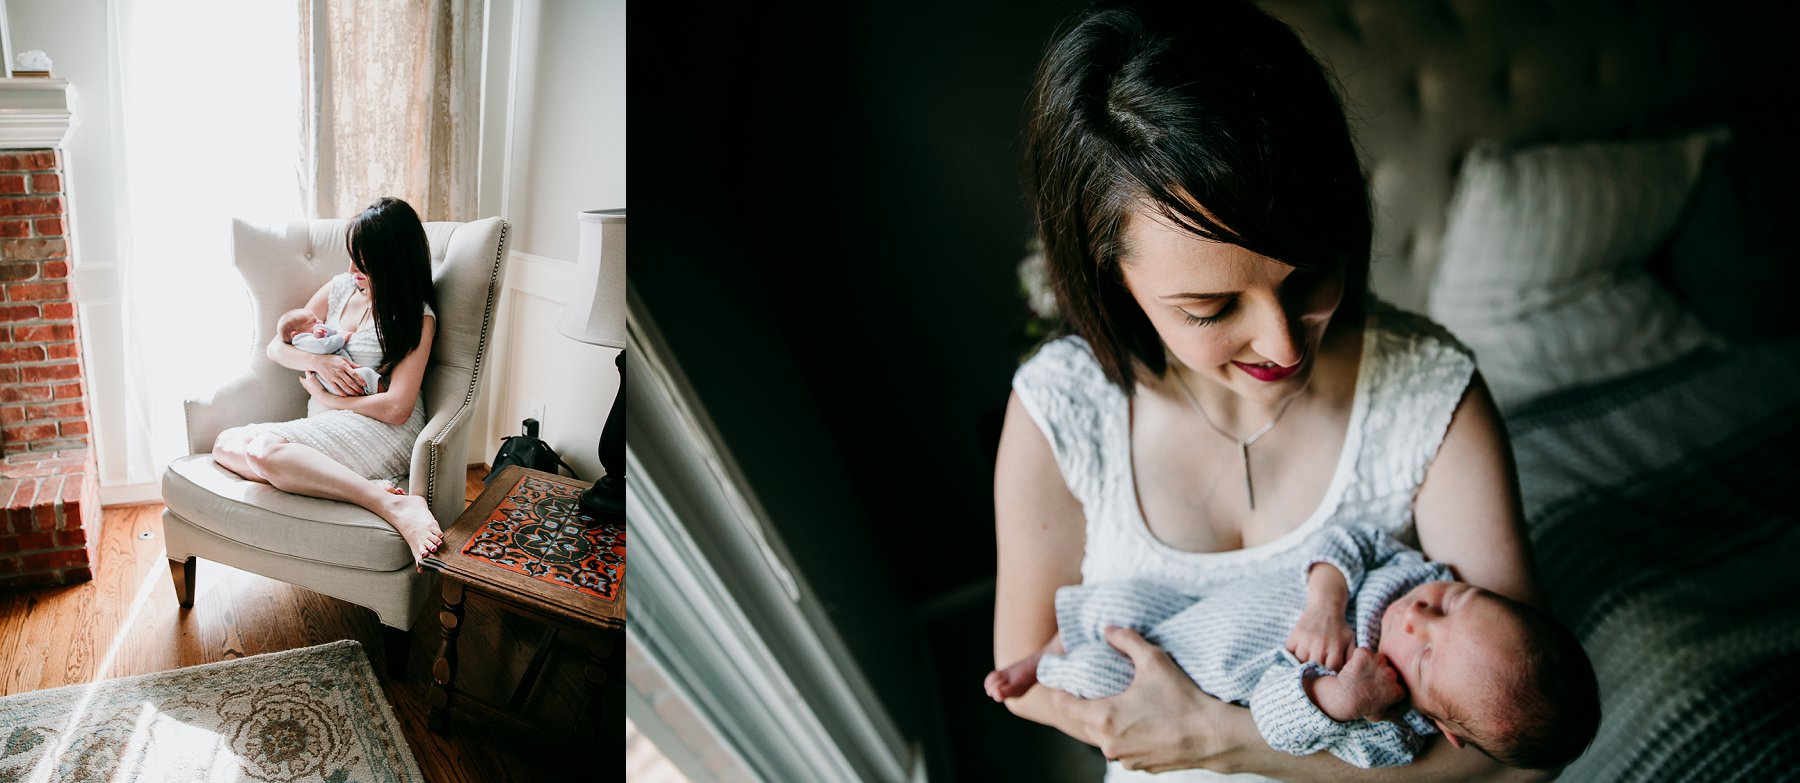 Kansas City Newborn Photography in Mission, Kansas by Merry Ohler (24)